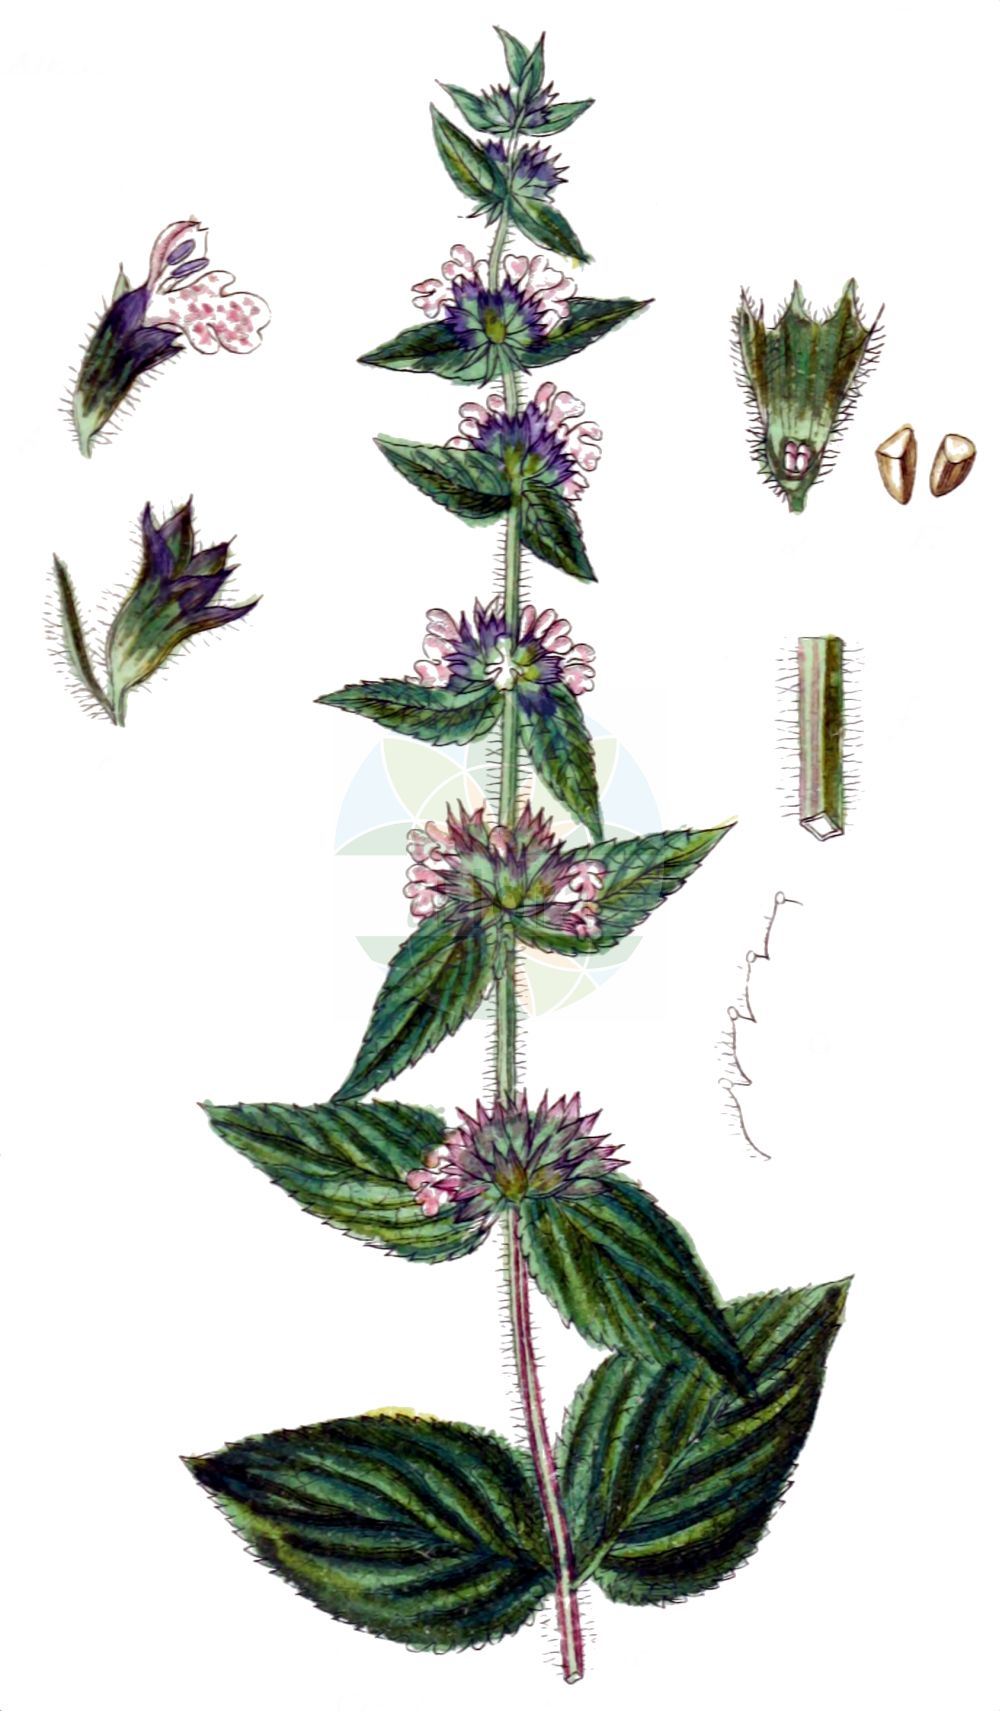 Historische Abbildung von Stachys alpina (Alpen-Ziest - Limestone Woundwort). Das Bild zeigt Blatt, Bluete, Frucht und Same. ---- Historical Drawing of Stachys alpina (Alpen-Ziest - Limestone Woundwort).The image is showing leaf, flower, fruit and seed.(Stachys alpina,Alpen-Ziest,Limestone Woundwort,Eriostomum alpinum,Stachys alpina,Alpen-Ziest,Limestone Woundwort,Alpine Stachys,Alpine Woundwort,Stachys,Ziest,Hedgenettle,Lamiaceae,Lippenbluetengewaechse,Lippenbluetler,Nettle family,Blatt,Bluete,Frucht,Same,leaf,flower,fruit,seed,Sturm (1796f))